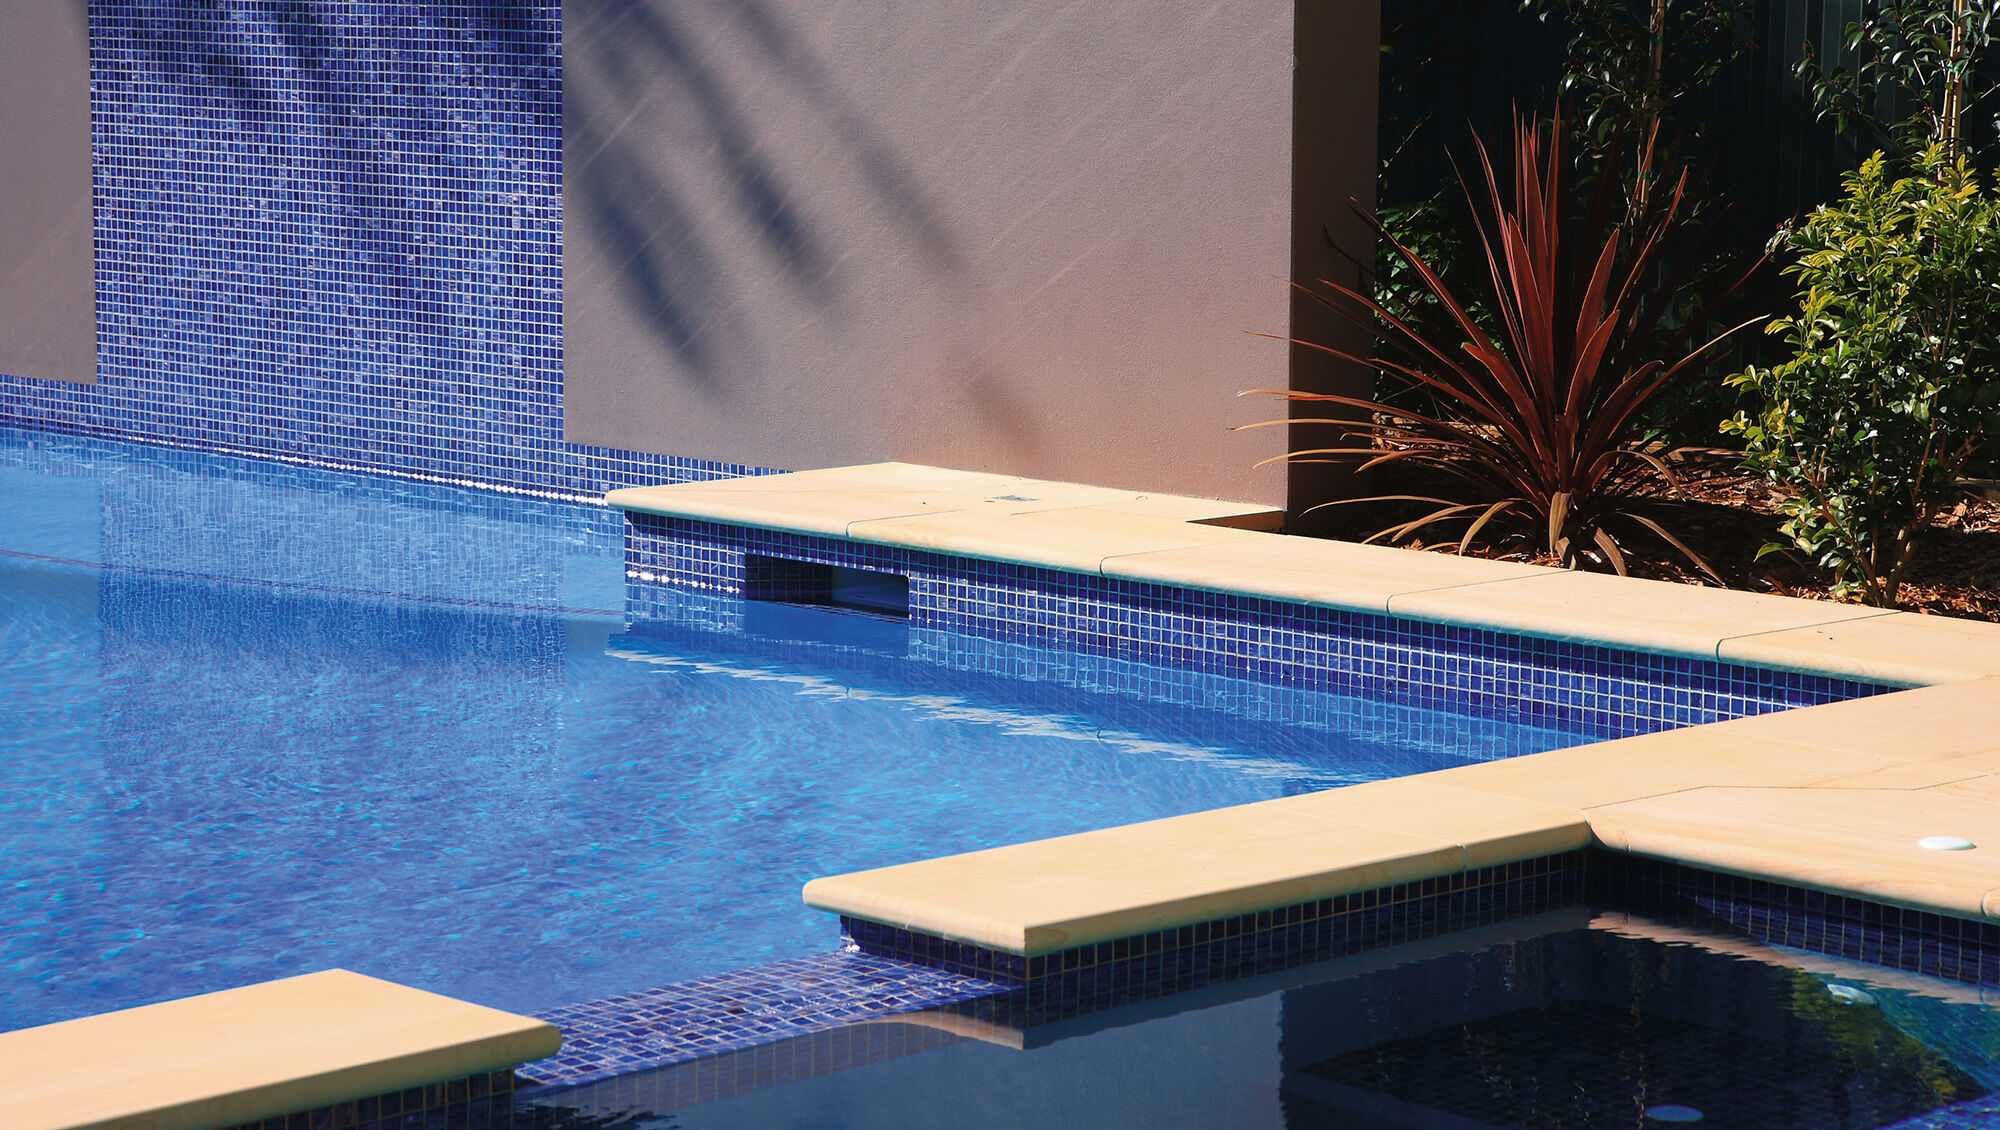 Penshurst Pool / Spa / Deck / Cabana